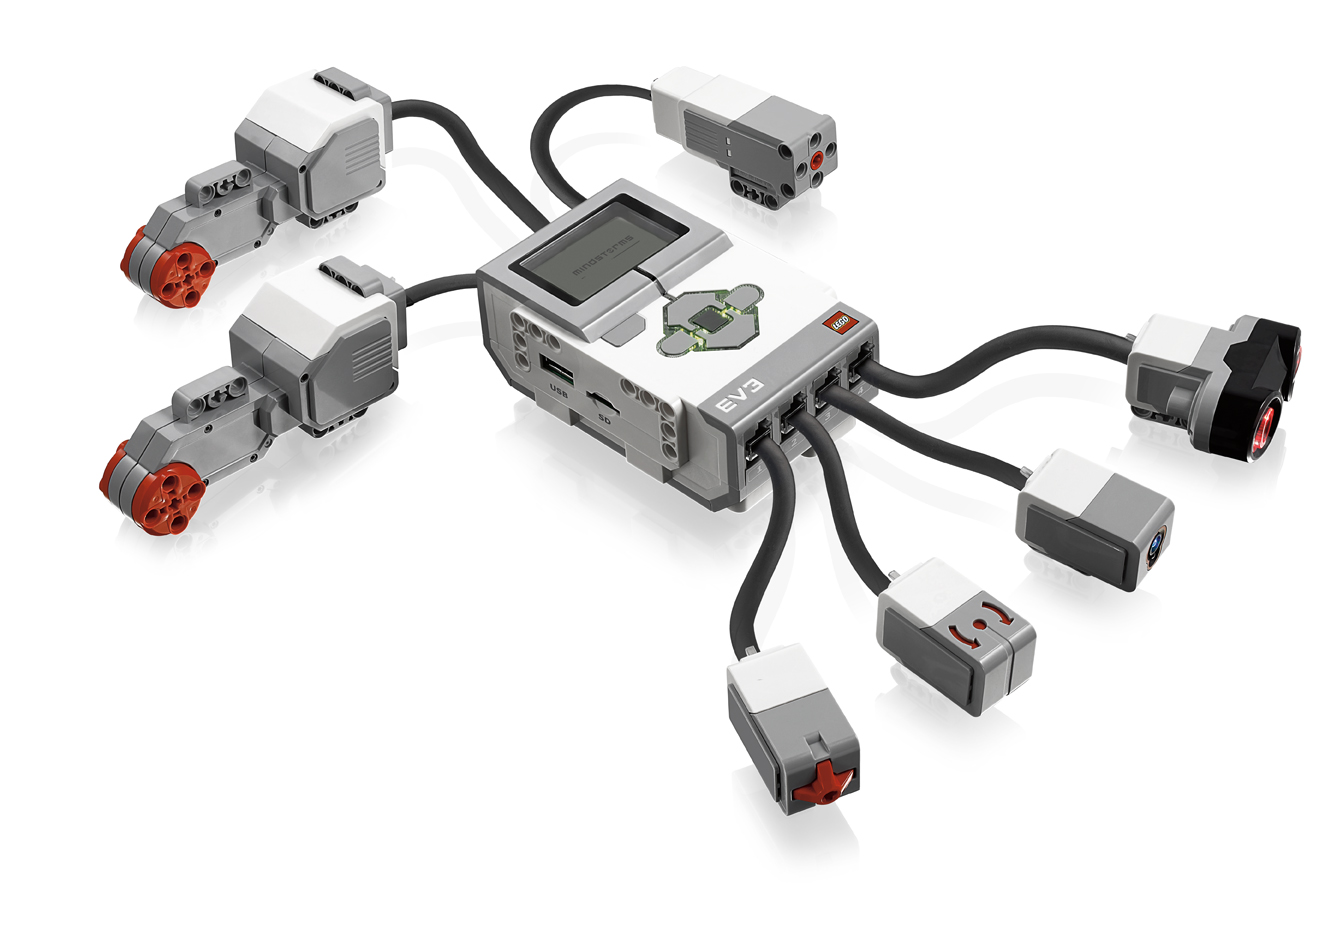 Brique intelligente du LEGO Mindstorms EV3